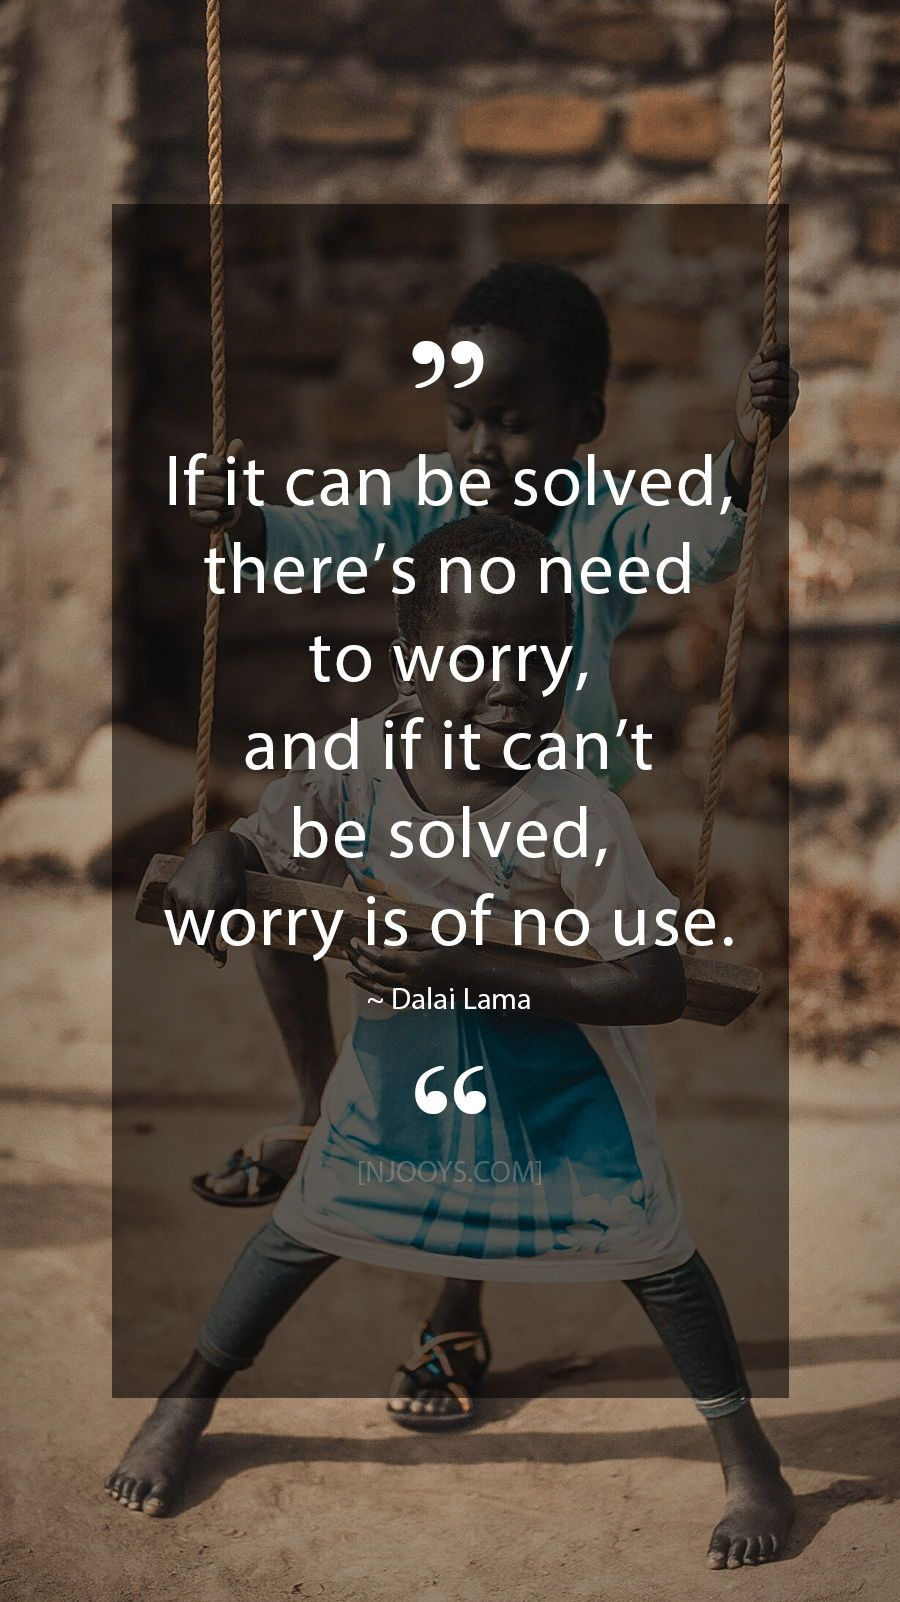 Dalai Lama Quotes If it can be solved there s no need to